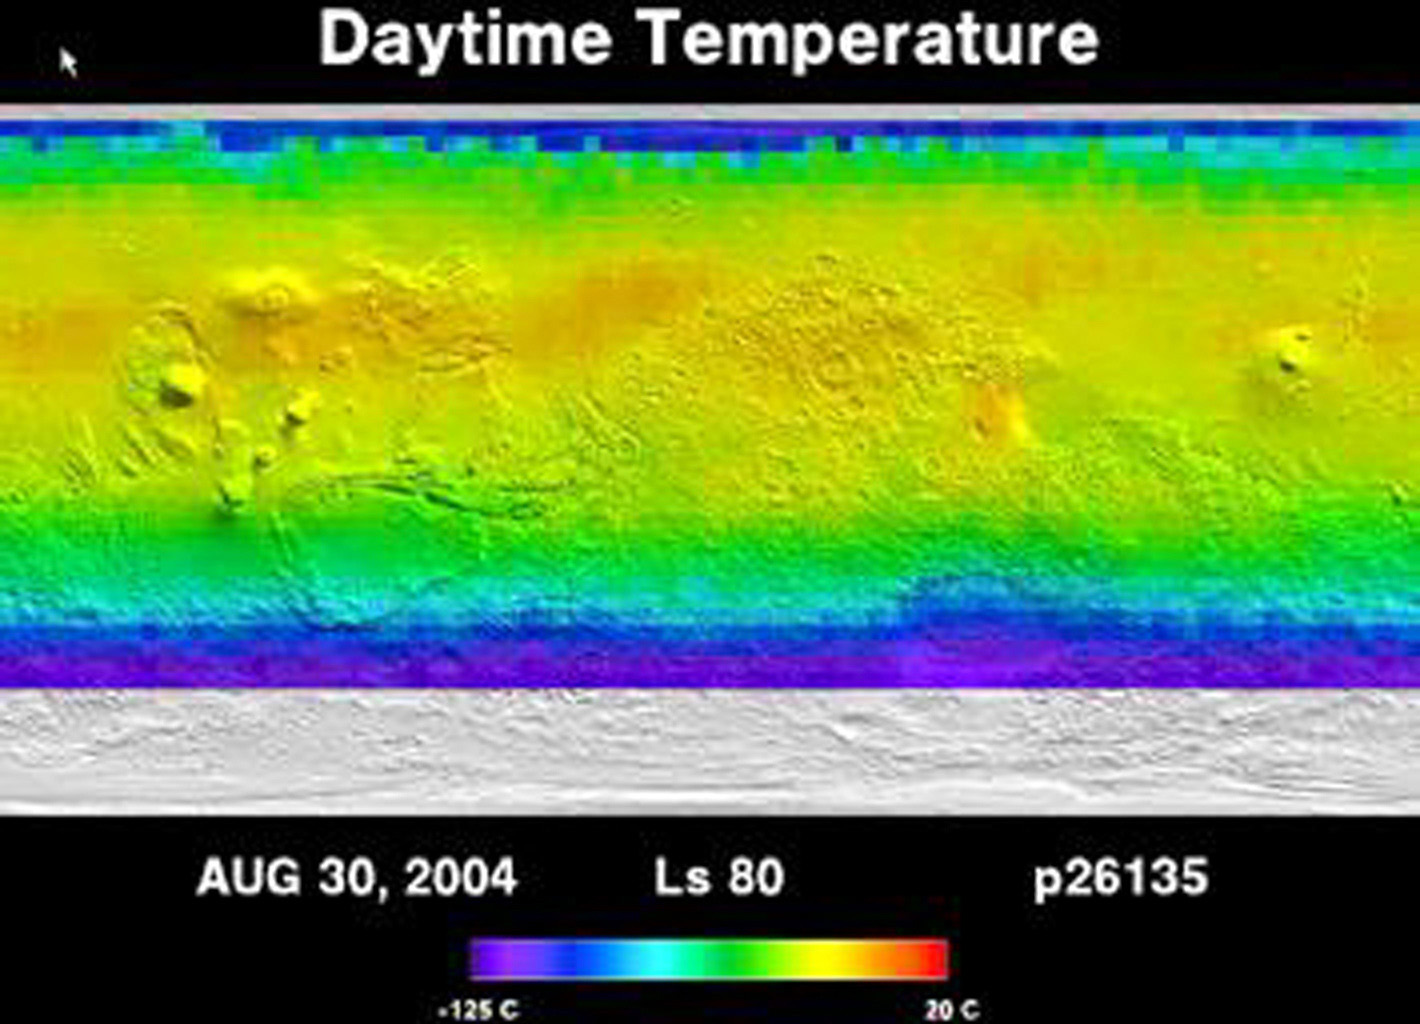 NASA's Mars Global Surveyor shows temperatures outlining the growth and retreat of the martian northern and southern polar ice caps. The caps grow in winter and are composed of carbon dioxide ice.